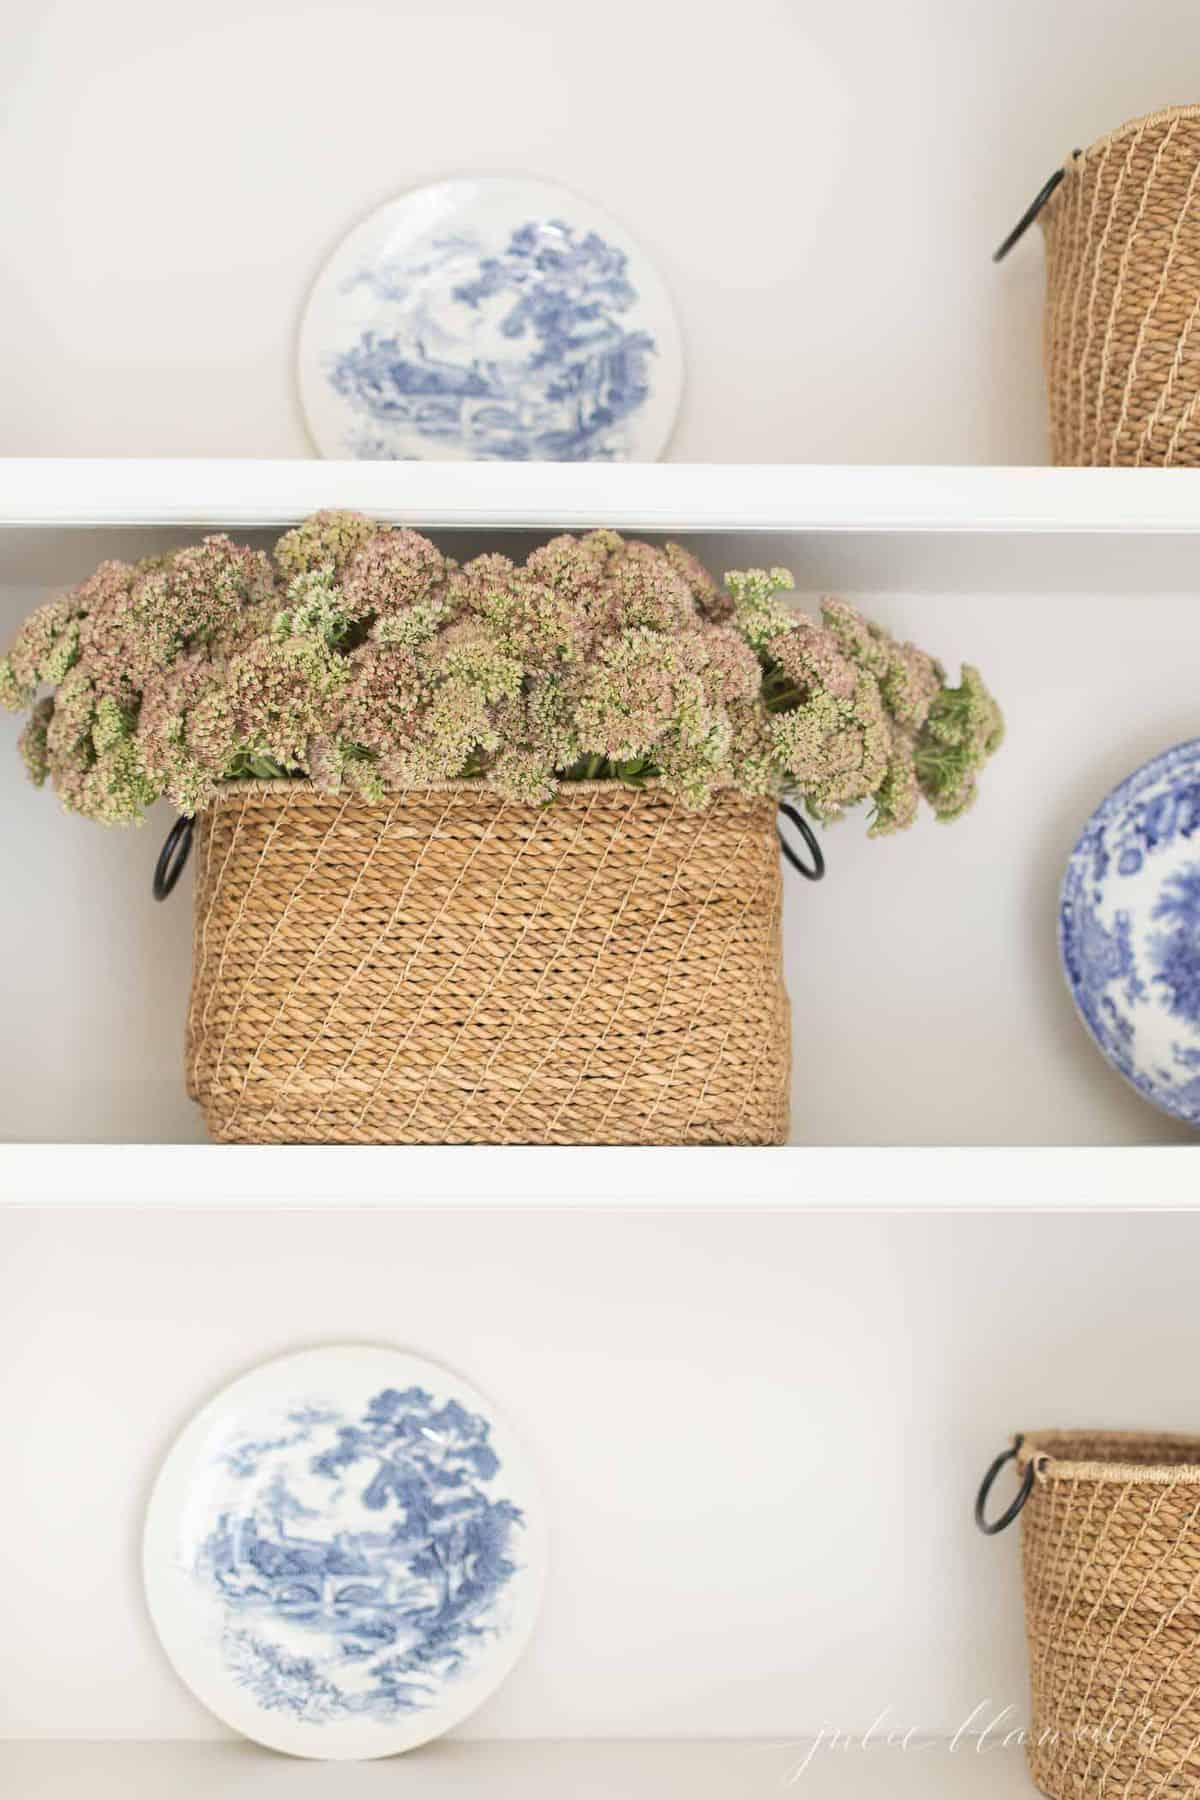 Shelves featuring a basket of fall sedum, blue and white plates as decor.